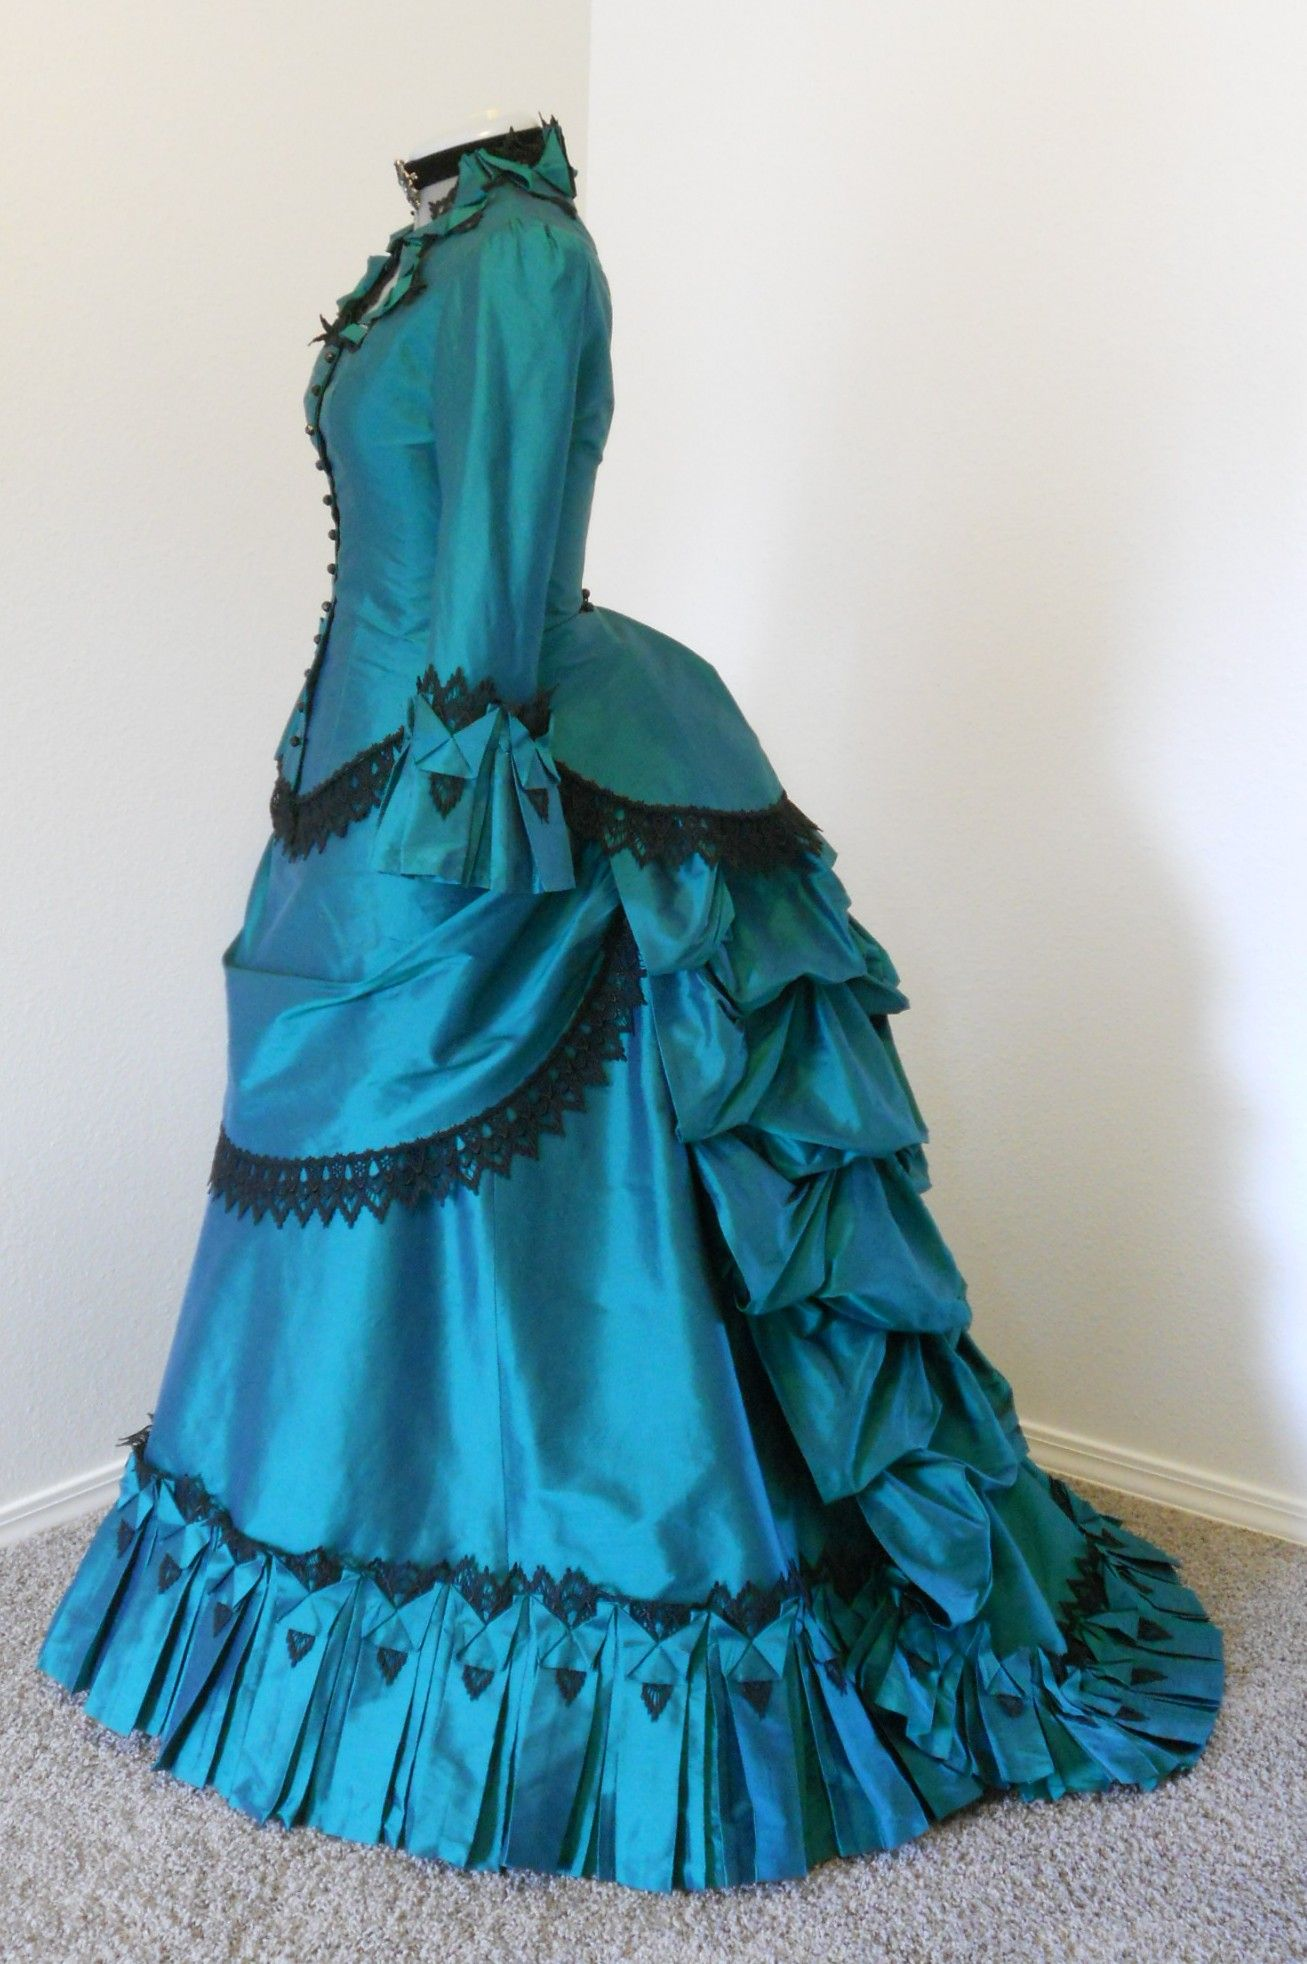 Innovative Bustle Dress Victorian Style Dresses Short Victorian Style Dresses 2016 This Is An Original Victorian Bustle Twopiece Dress Sally C Designs Dress Victorian